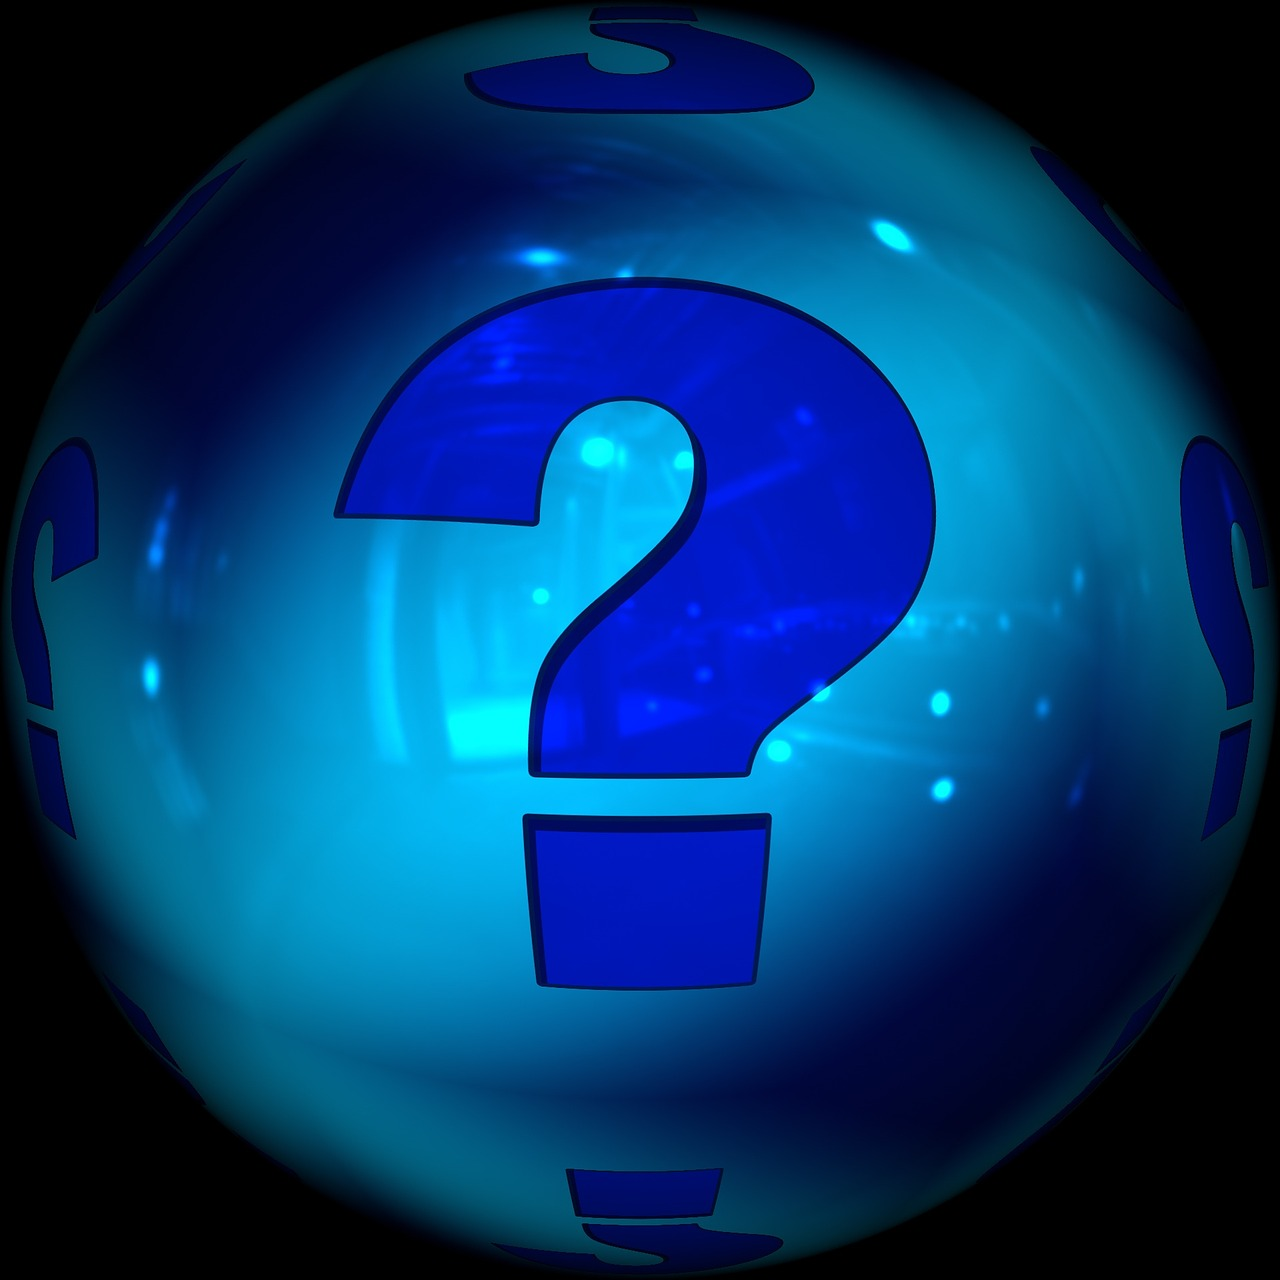 ball,question mark,problem,question,theme,puzzles,issue,request,problem solution,characters,sentence construction,inform,expectation,facts,free pictures, free photos, free images, royalty free, free illustrations, public domain